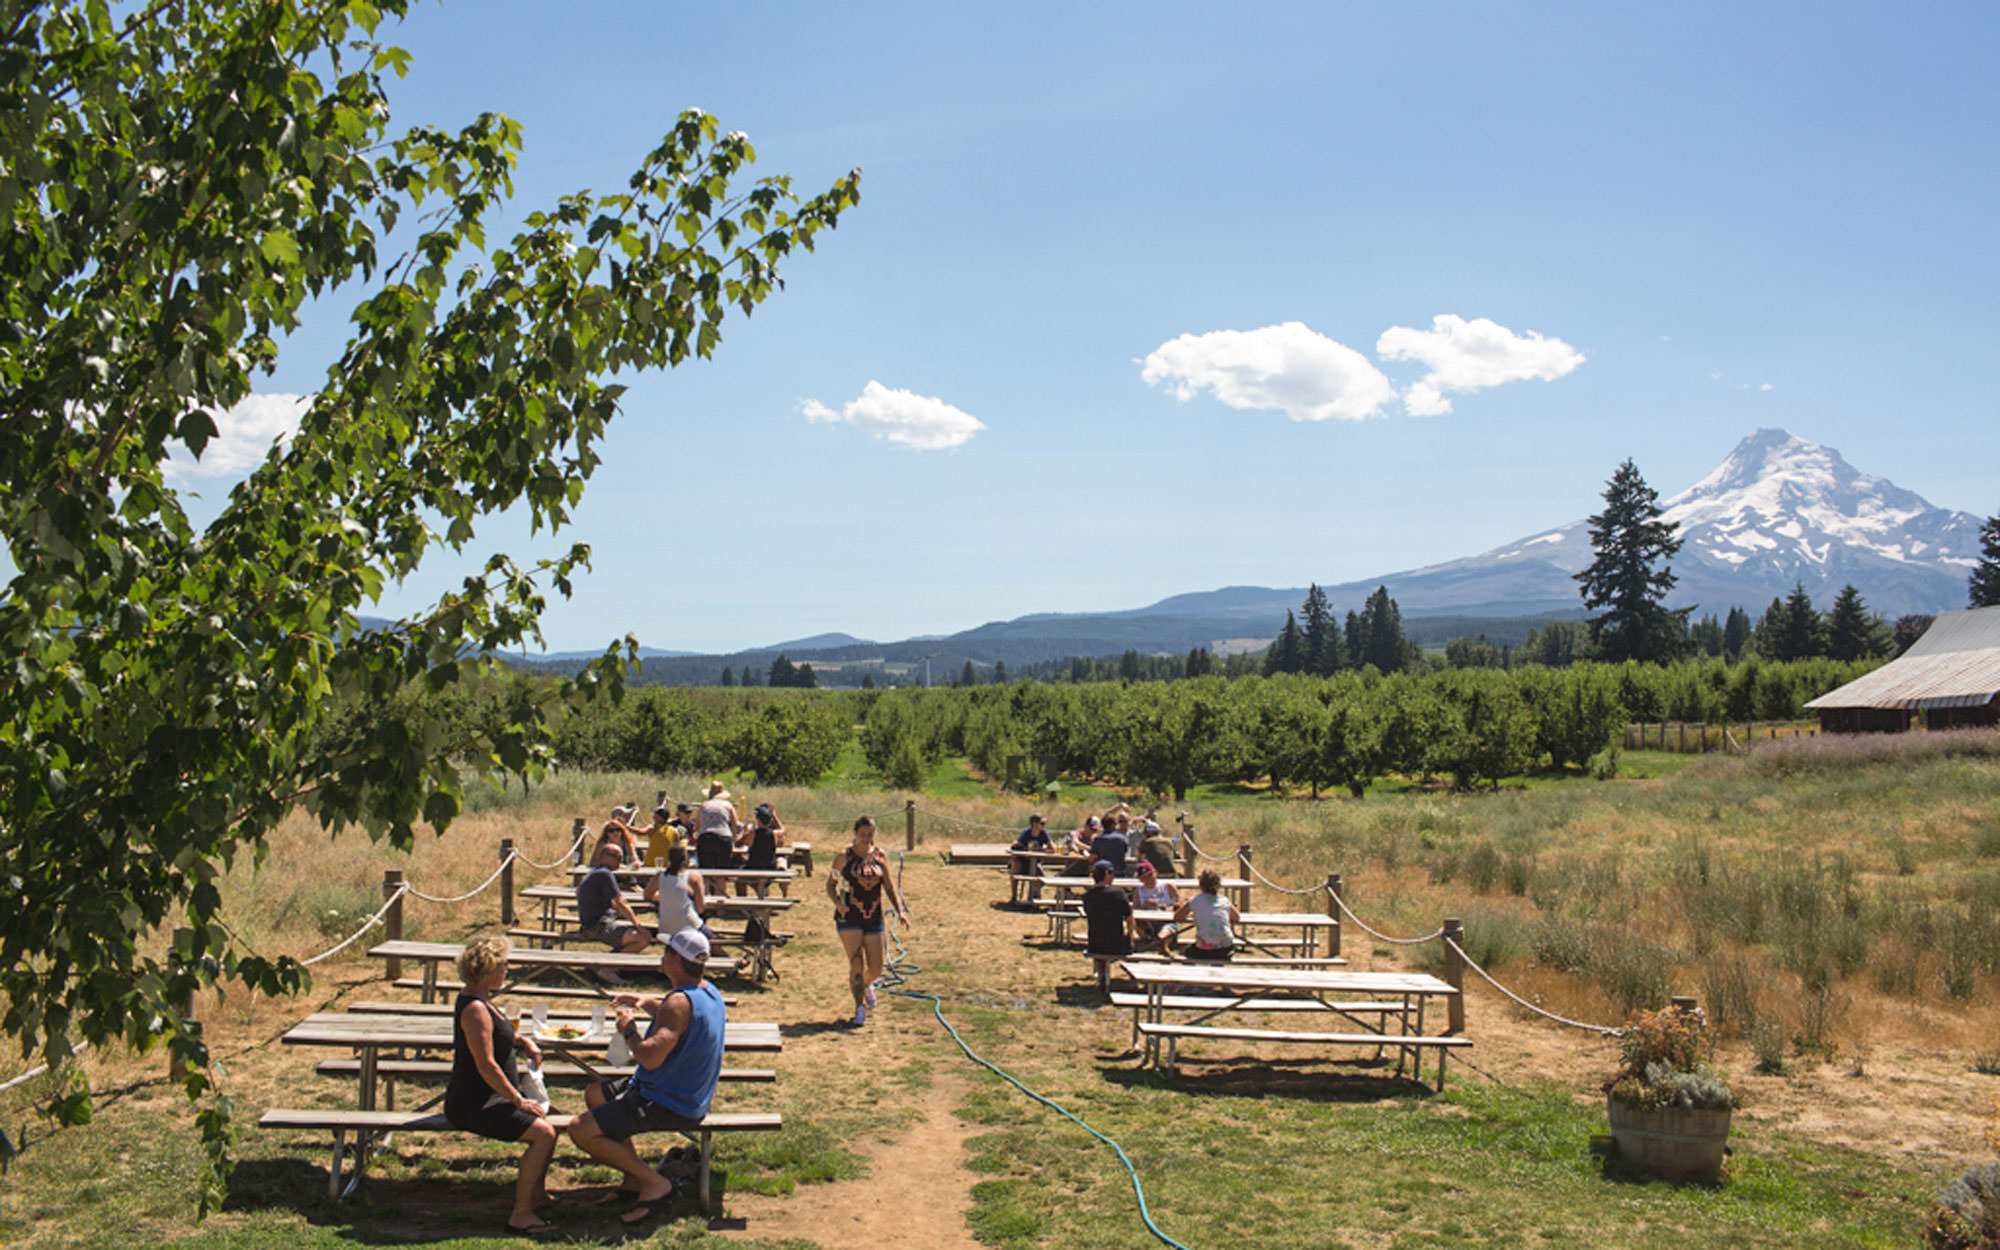 Picnic tables on a farm, with Mt. Hood in the backdrop, provide an idyllic resting point.